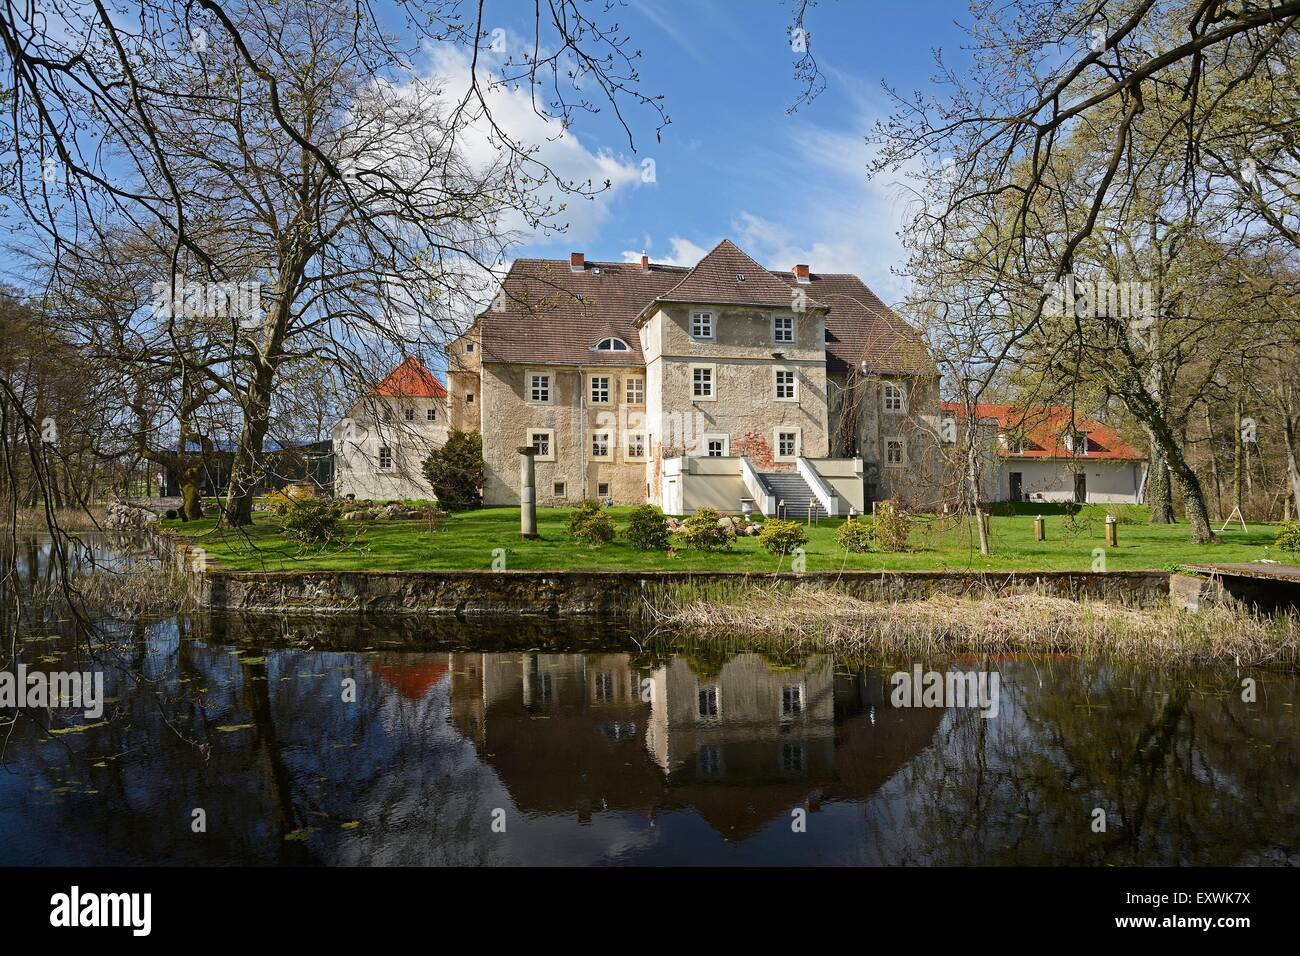 Moated castle Mellenthin, Usedom, Mecklenburg-Western Pomerania, Germany, Europe - Stock Image